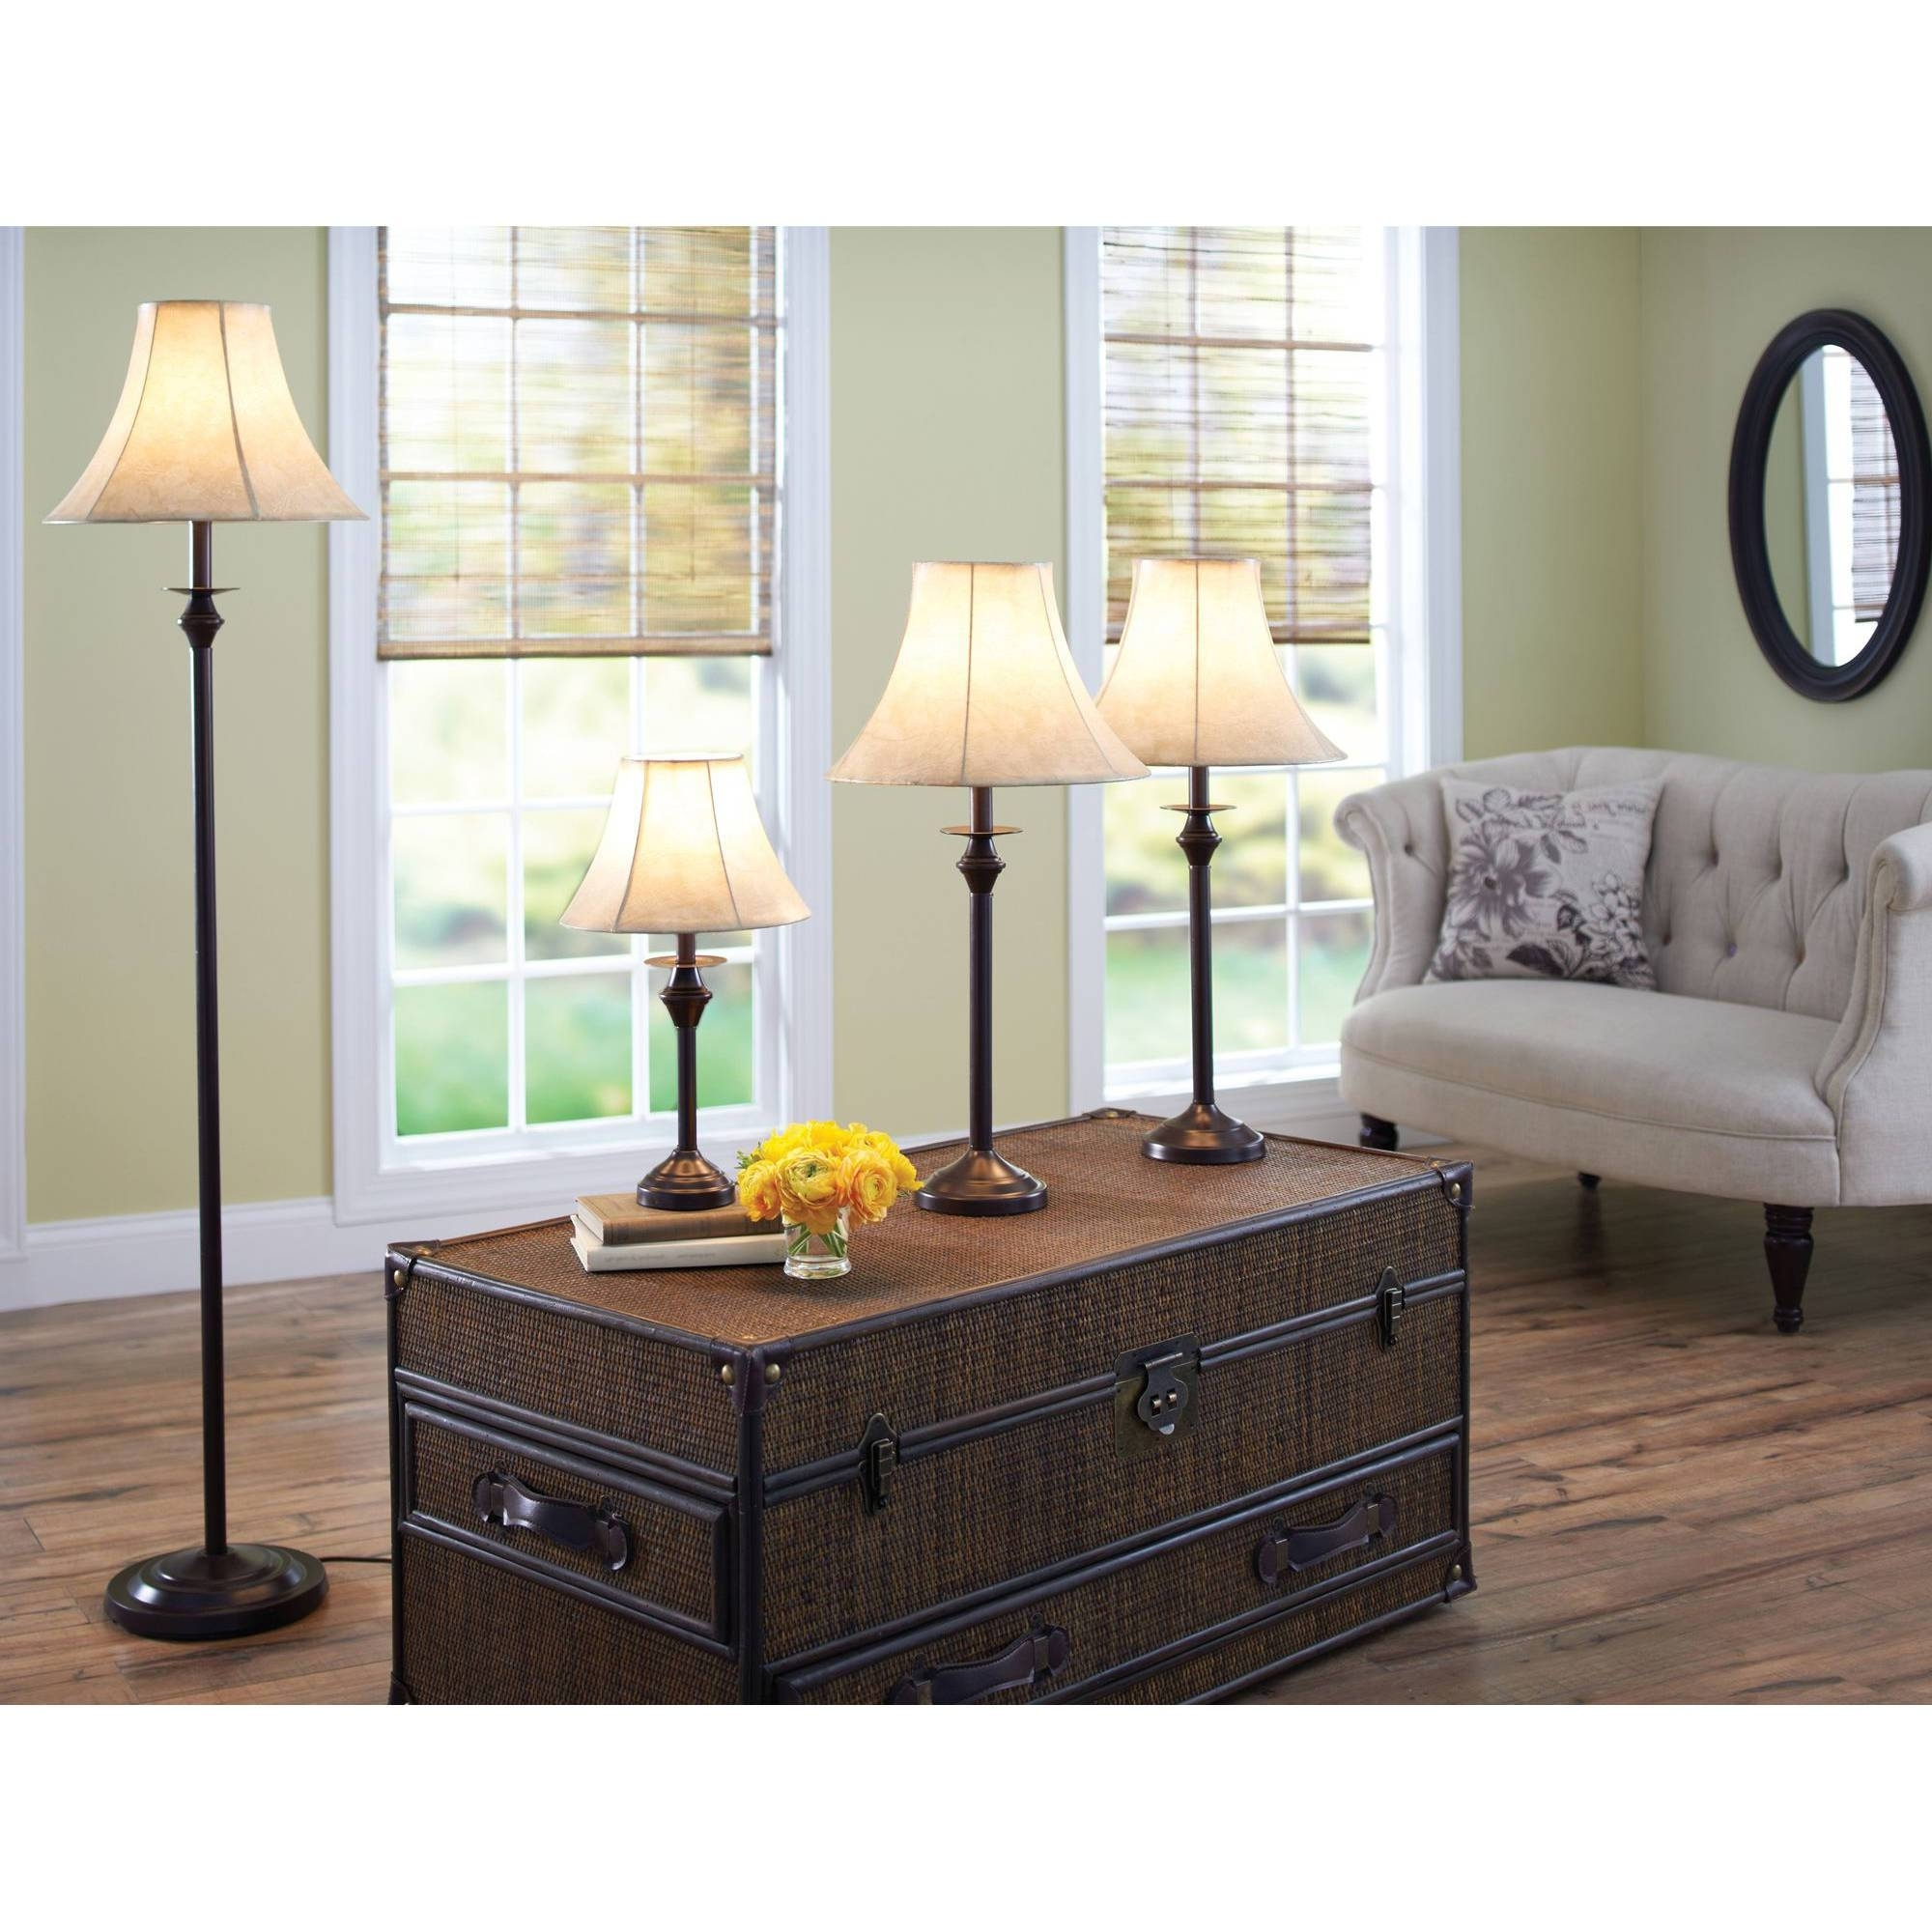 Bronze Living Room Table Lamps With 2018 Bronze Table Lamps For Living Room Home Design Plan, Bronze Table (View 8 of 15)